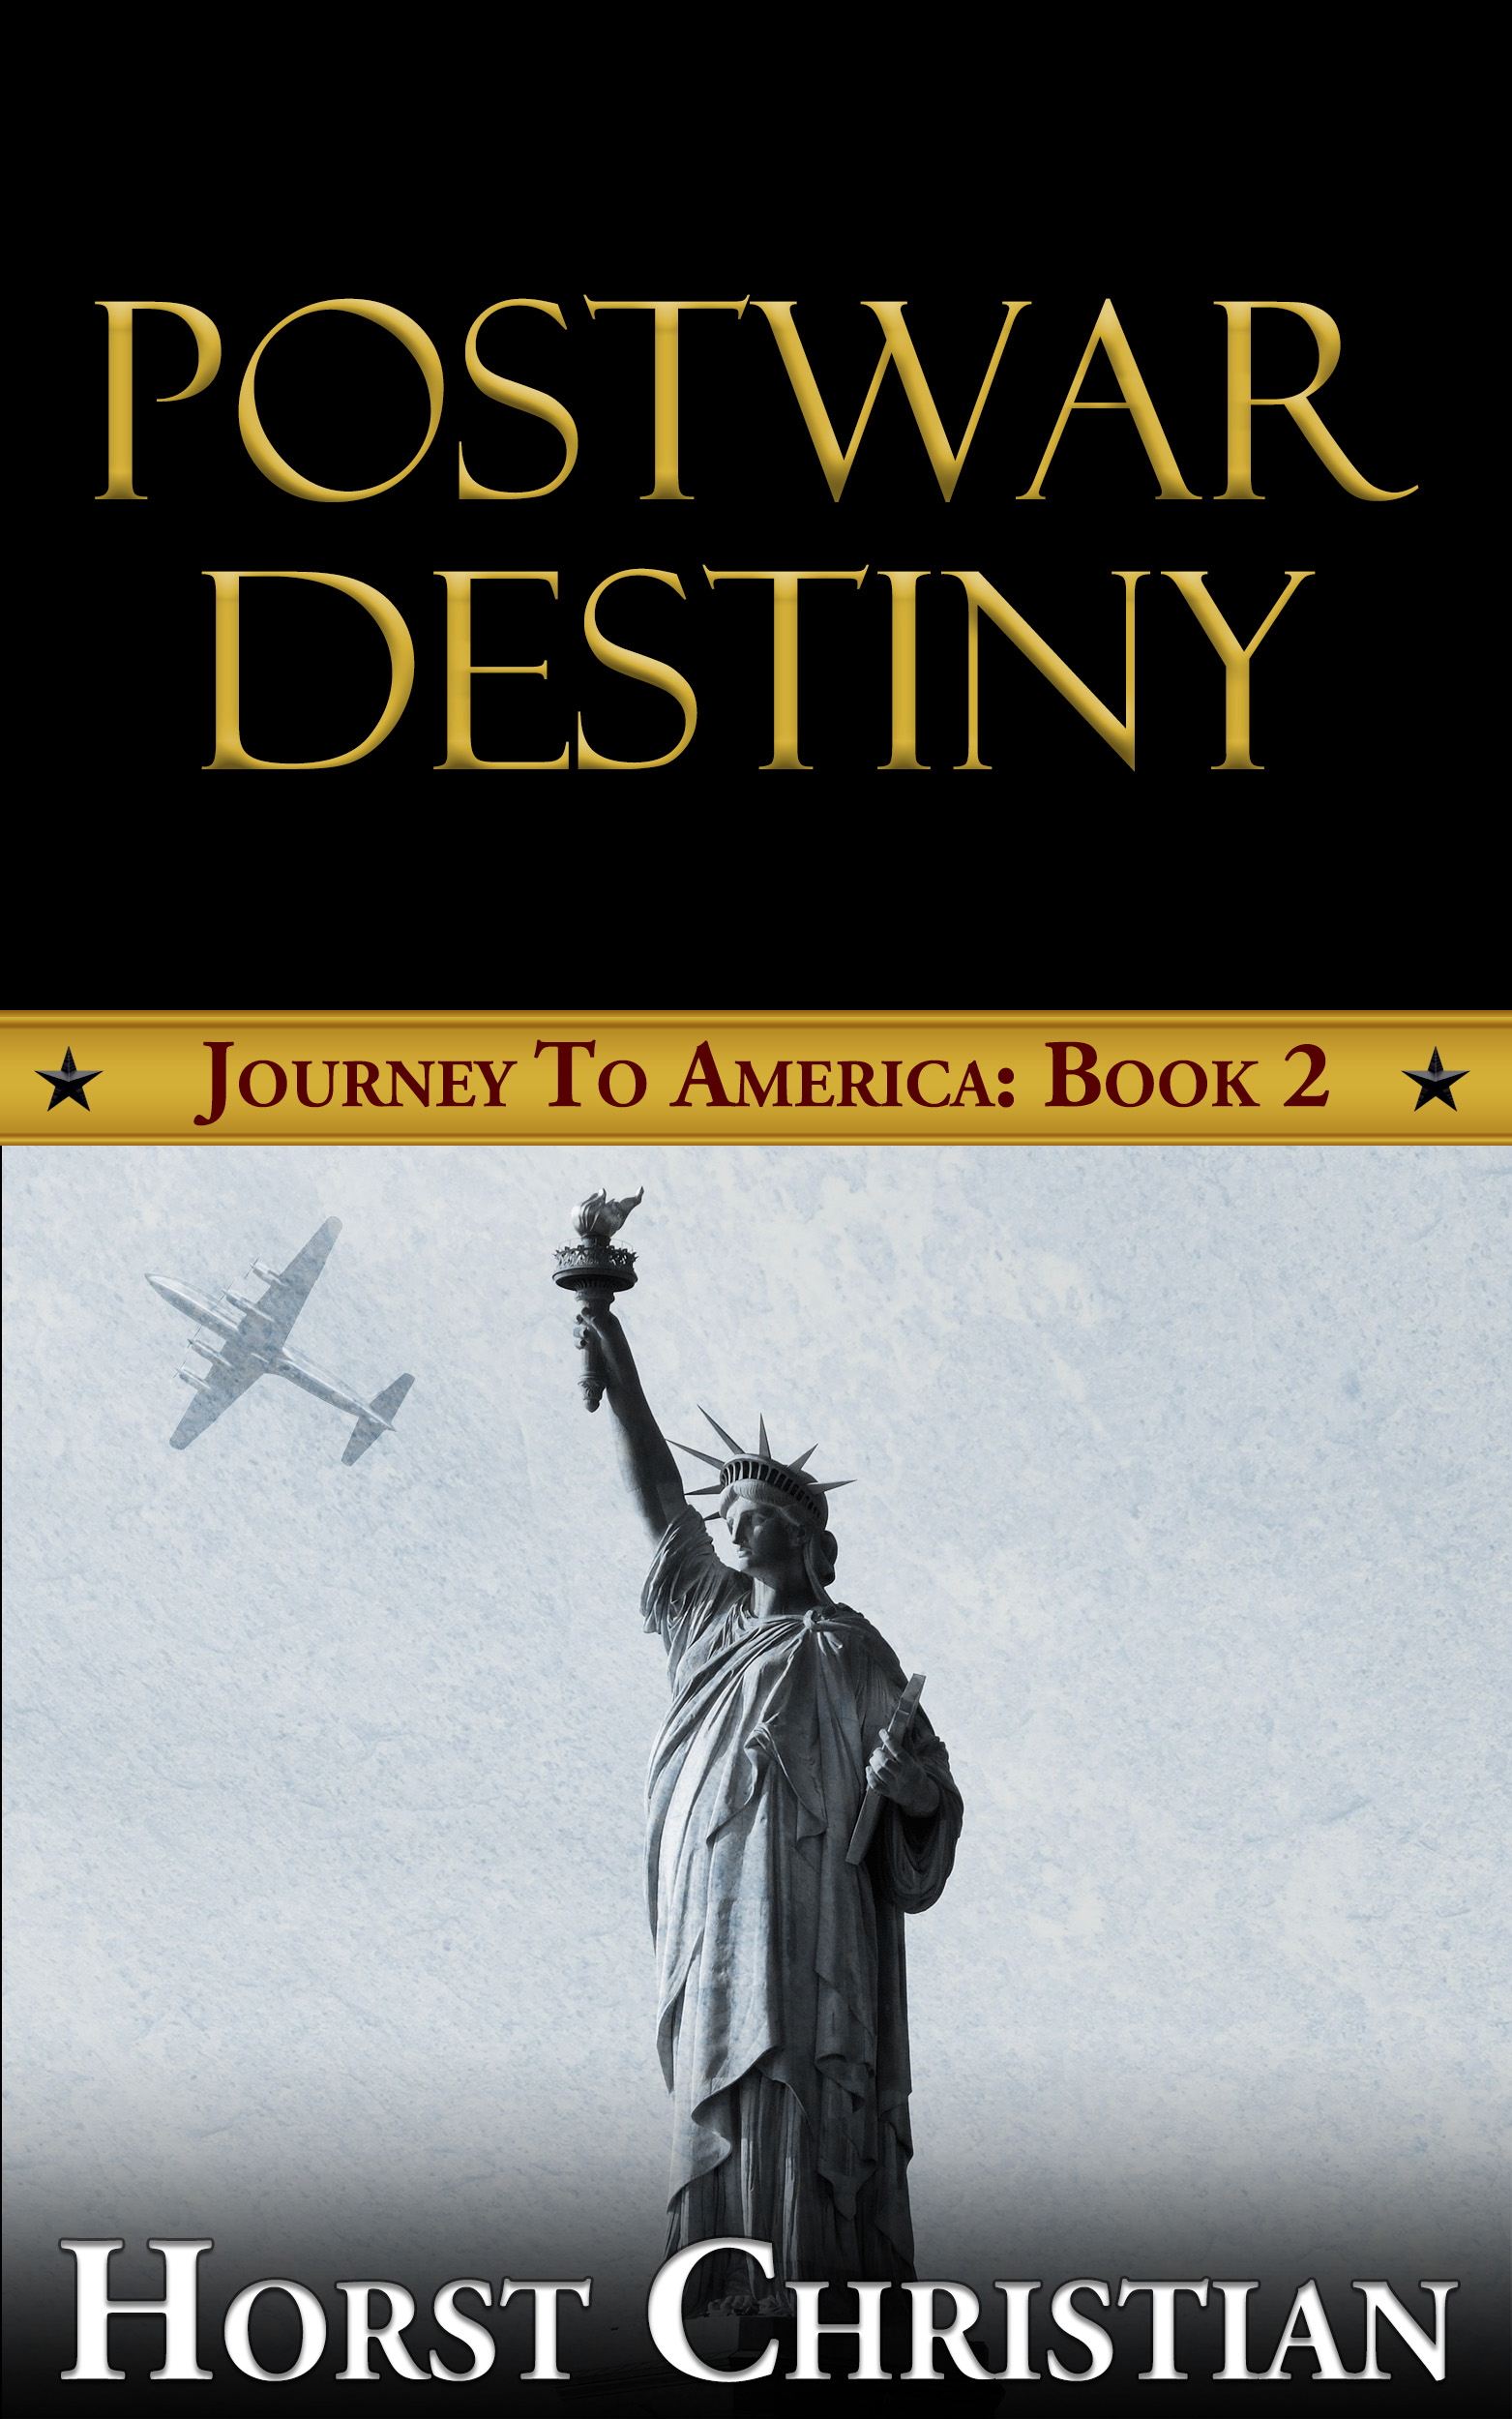 Postwar Destiny